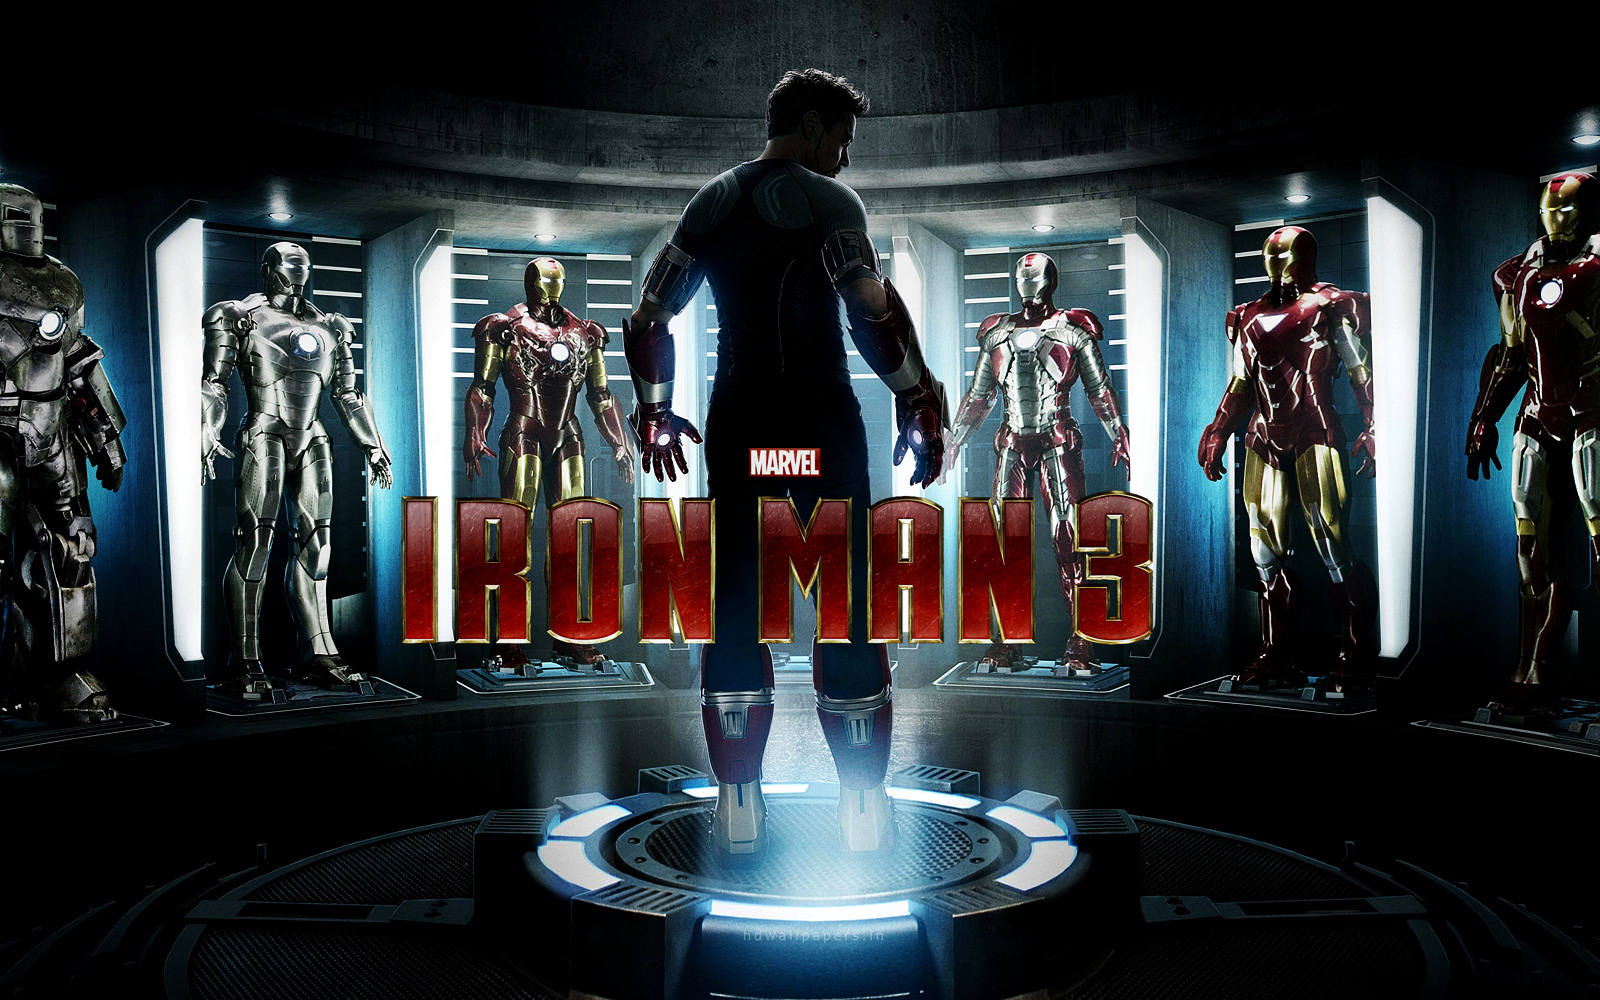 Hd Wallpapers Iron Man 3 - WallpaperSafari